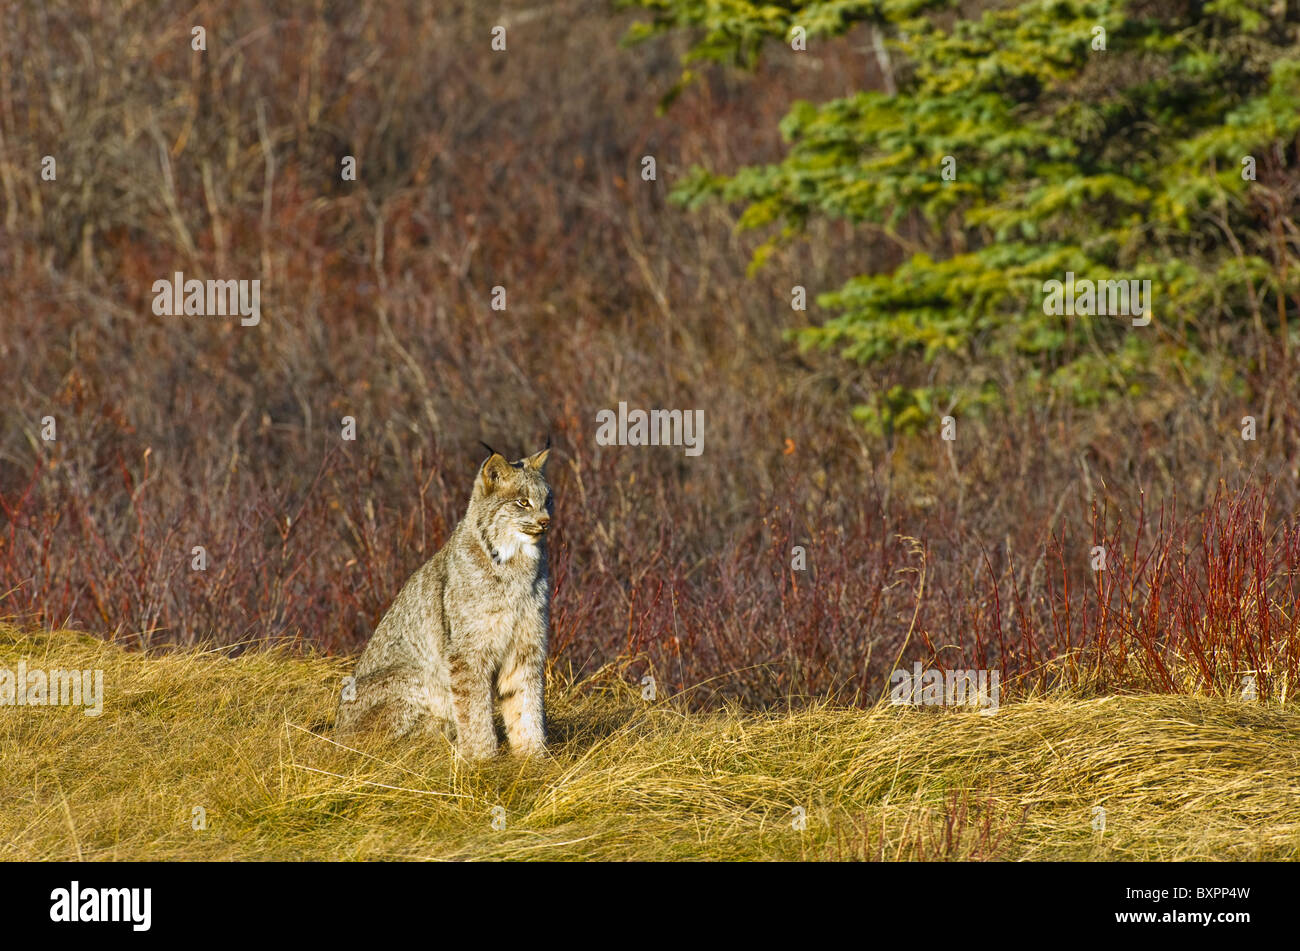 A wild Canadian Lynx sitting in some fall grasses - Stock Image